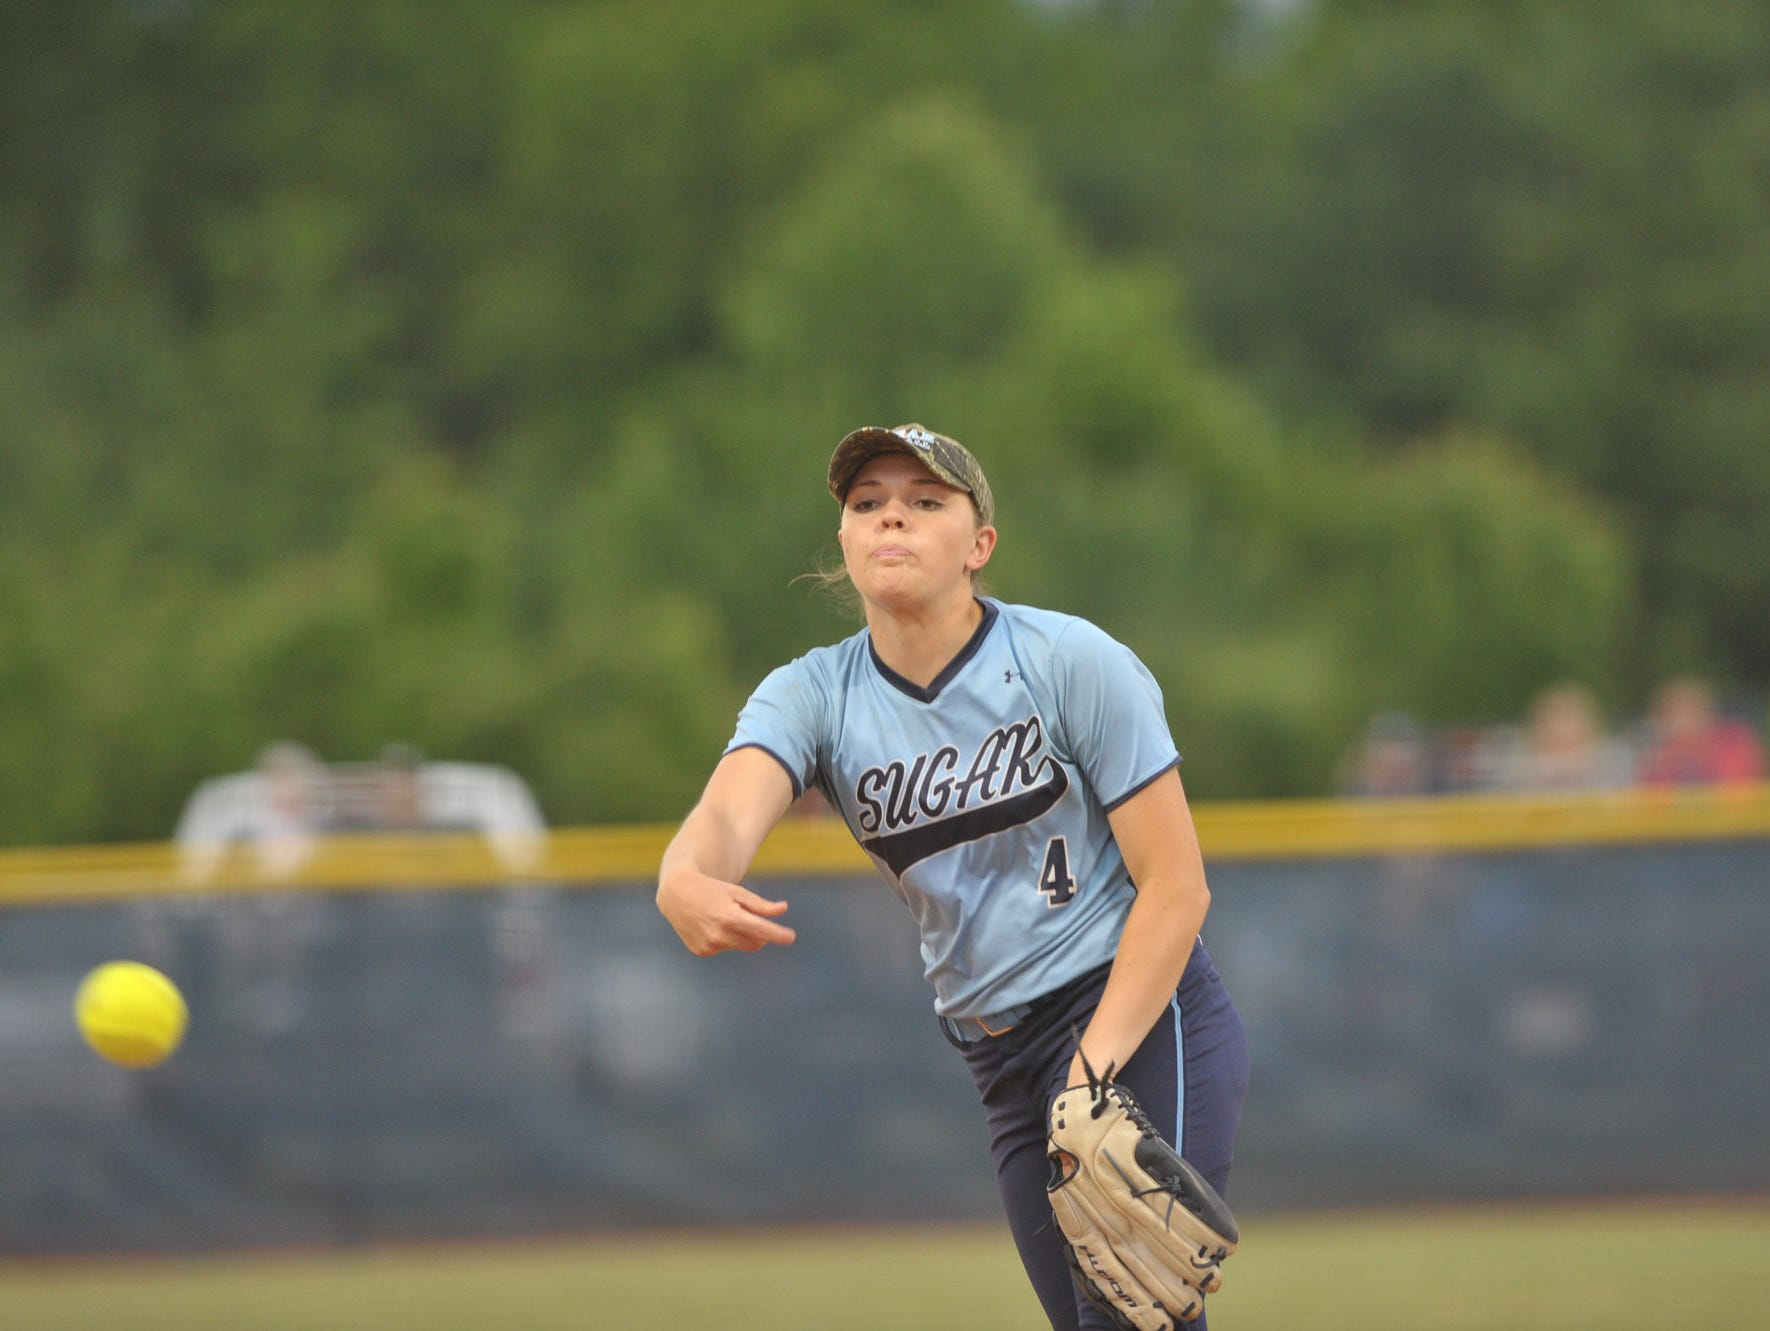 Enka senior Courtney Pearson has committed to play college softball for Queens.